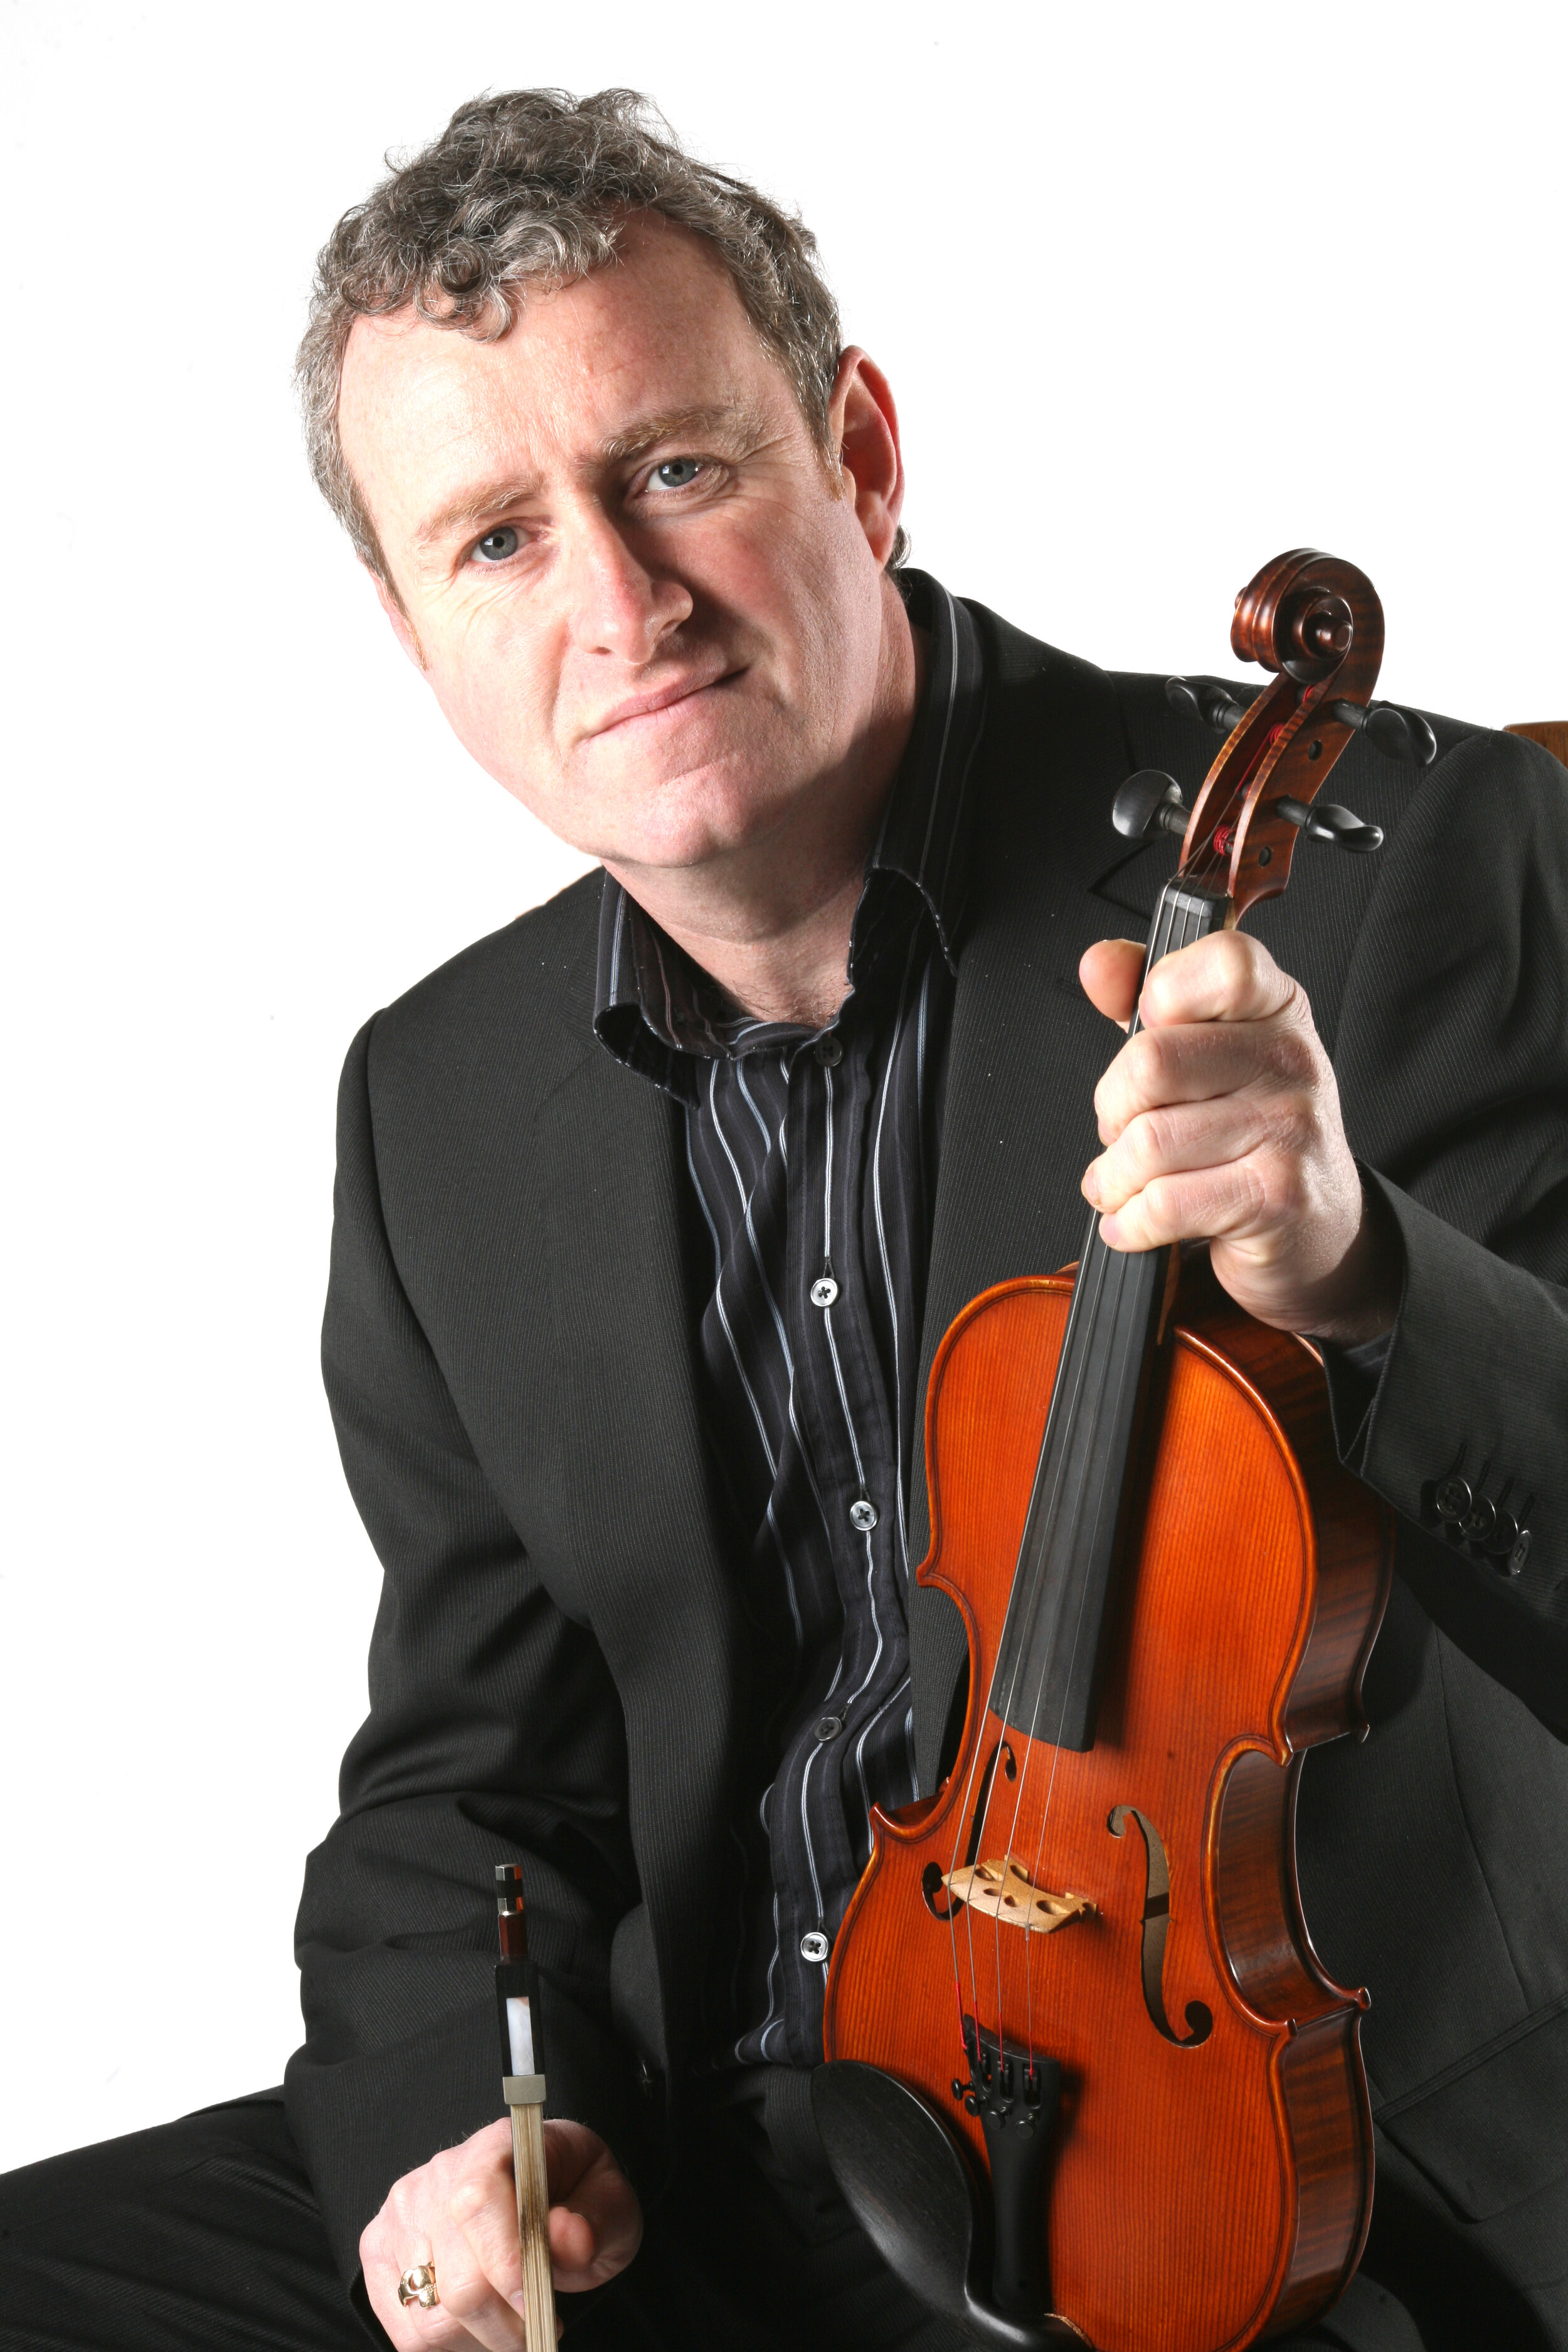 john carty - Trad Musician in Residence - Sligo (2019/20)